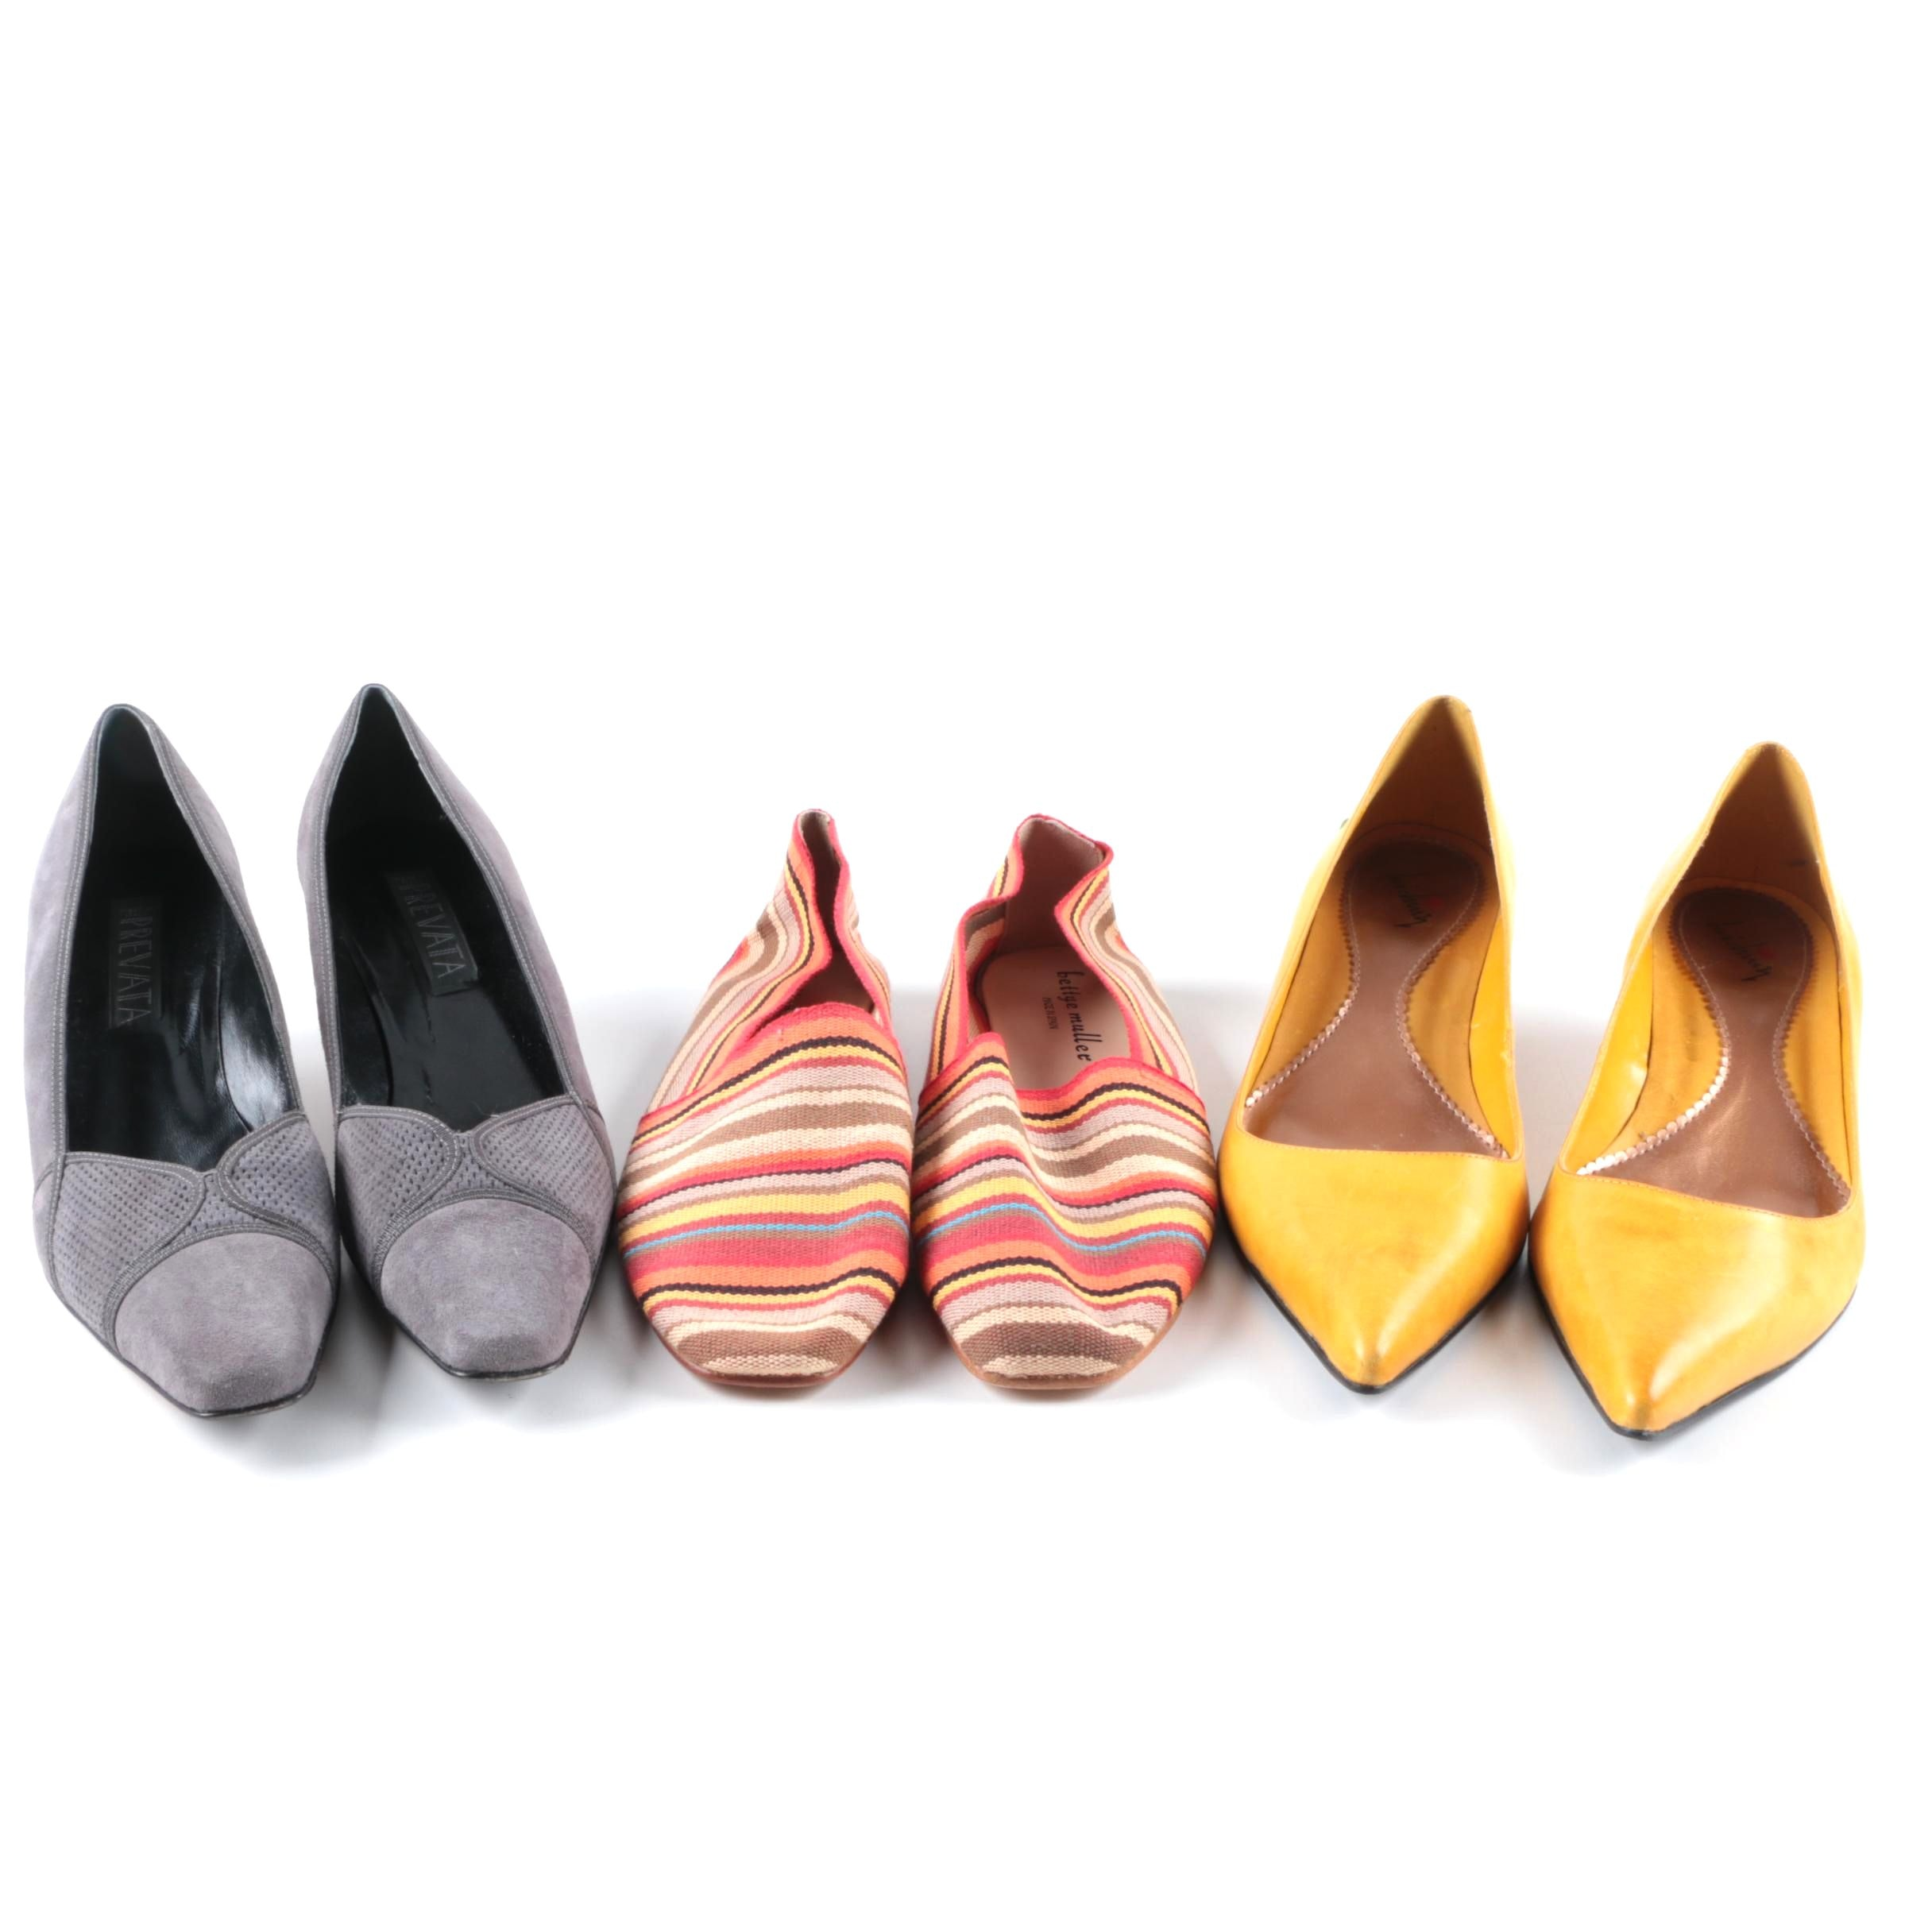 Women's Pumps and Espadrilles Including Prevata and Bettye Muller